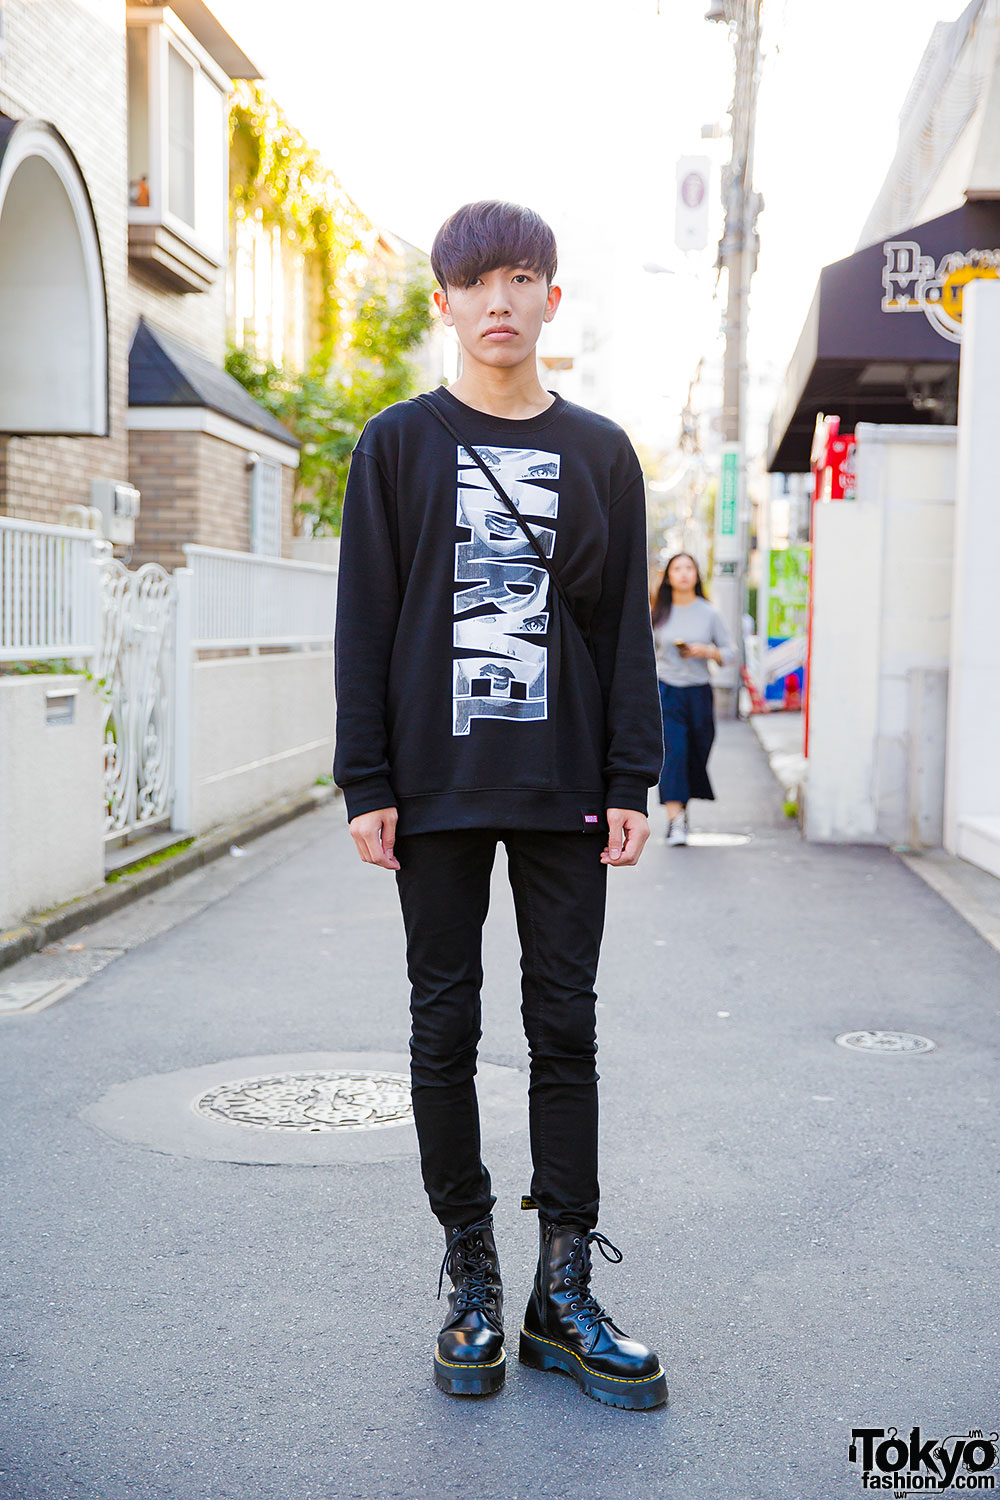 Marvel Comics X Boy London Sweatshirt Skinny Jeans Dr Martens In Harajuku